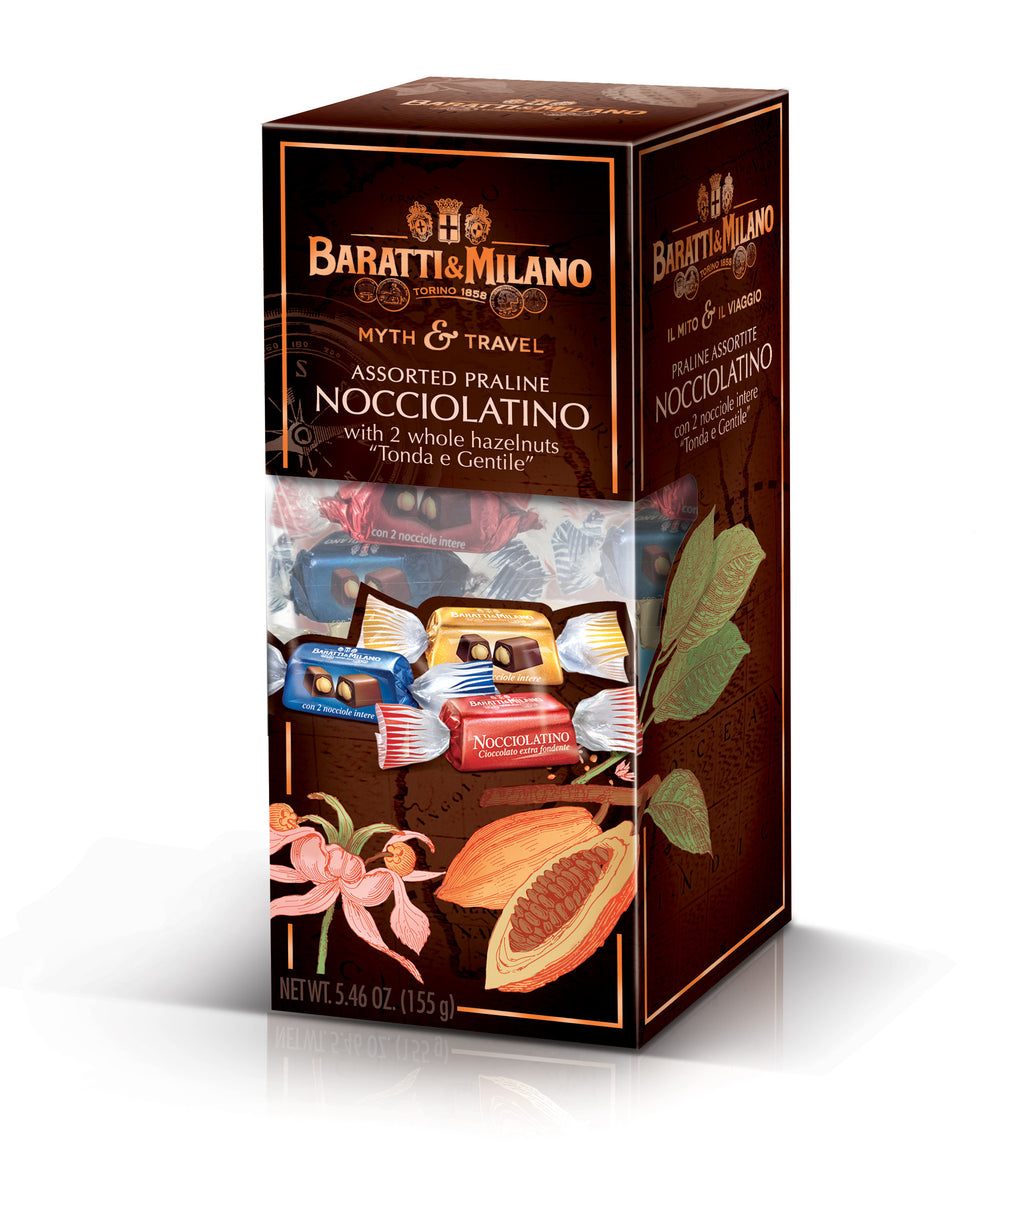 Myth and Travel Nocciolatino Assorted Praline whole Hazelnut Chocolates